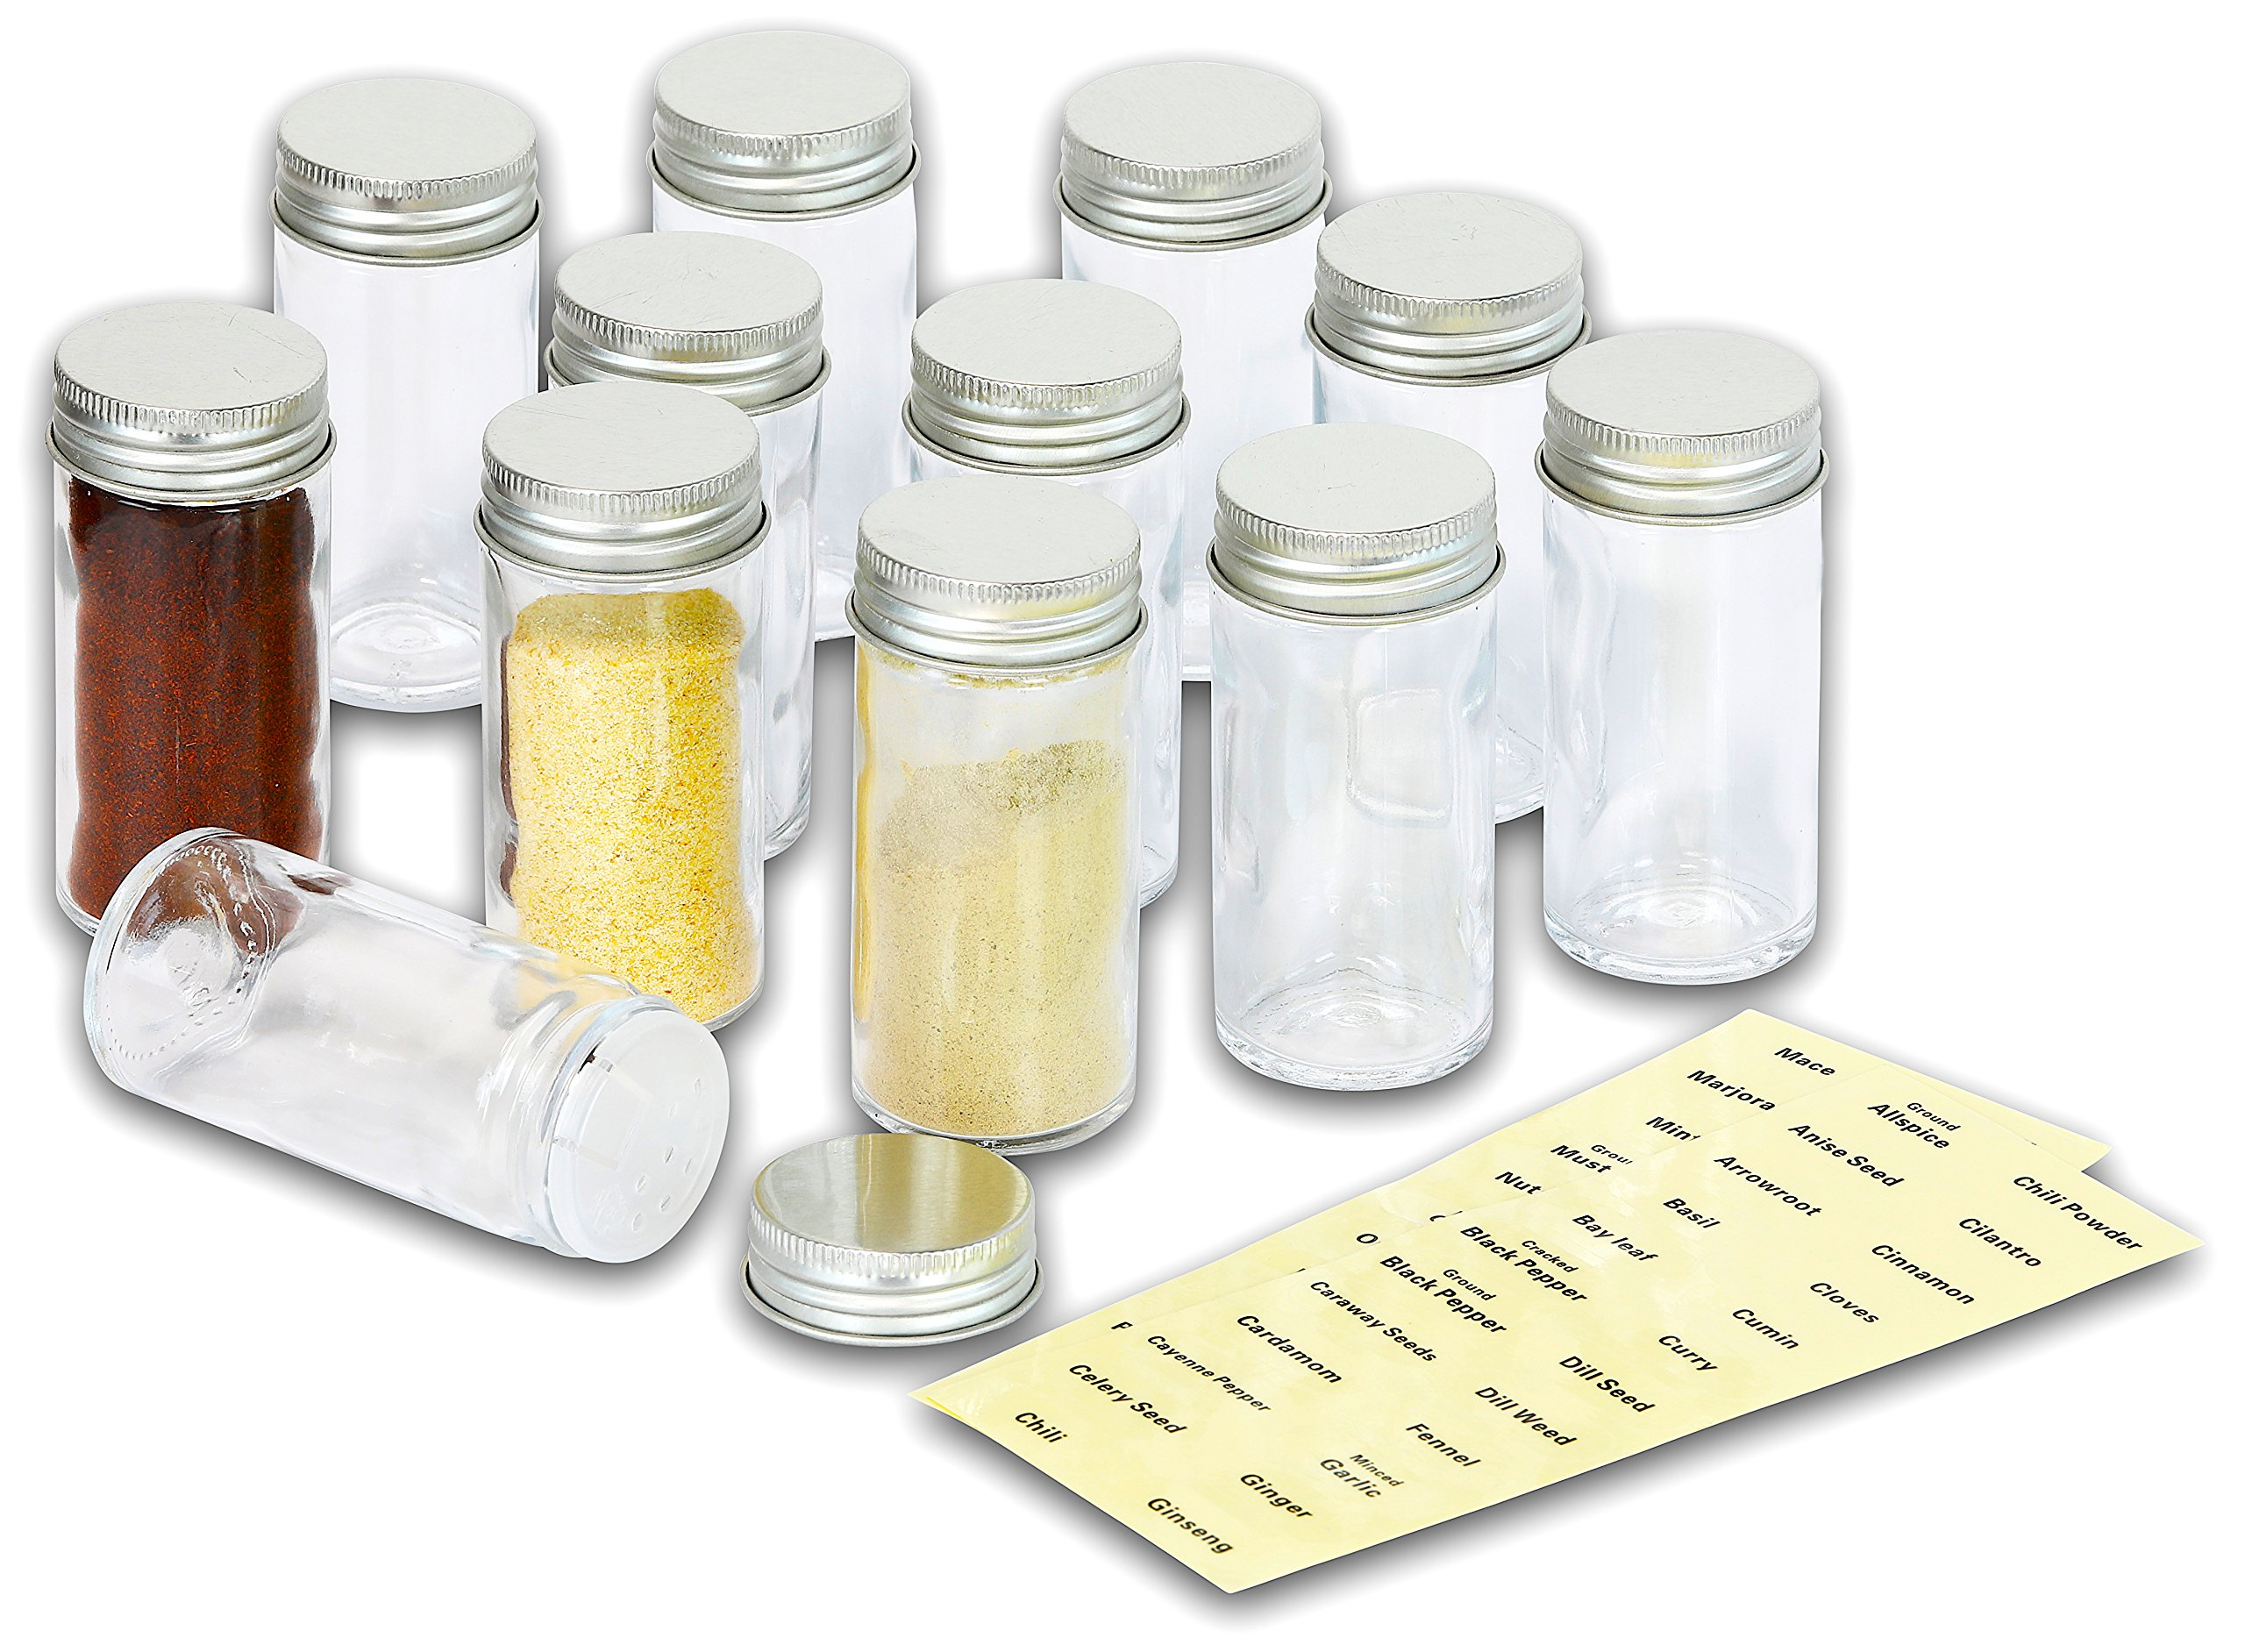 elegant 12 spice round bottles jar organizer 48 spice labels and 20